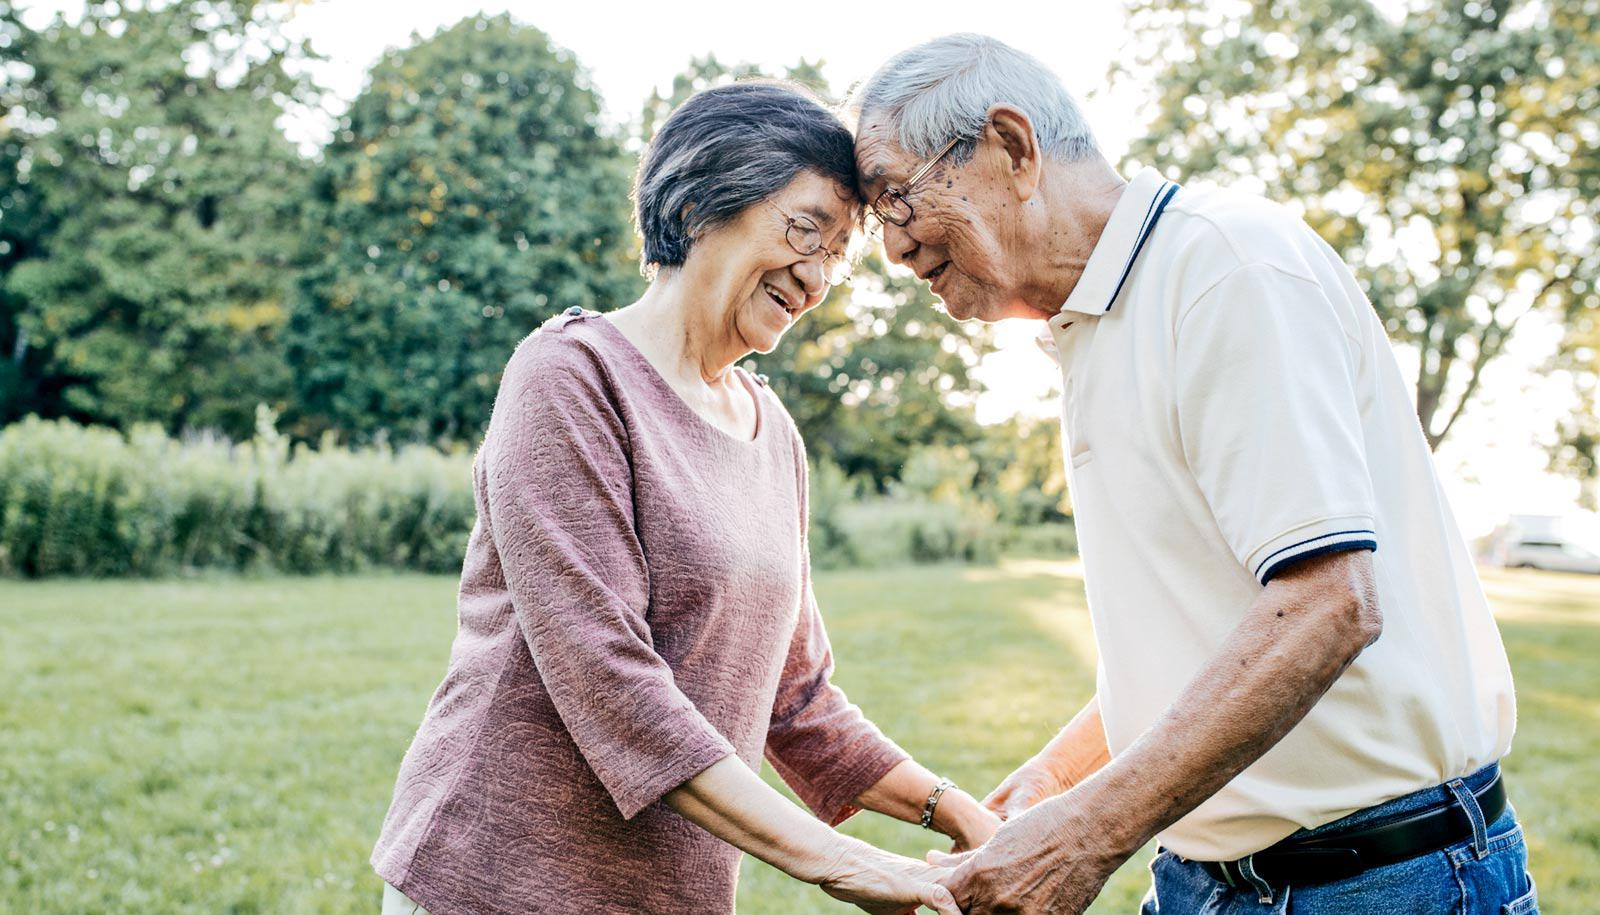 elderly woman and man touch foreheads outdoors